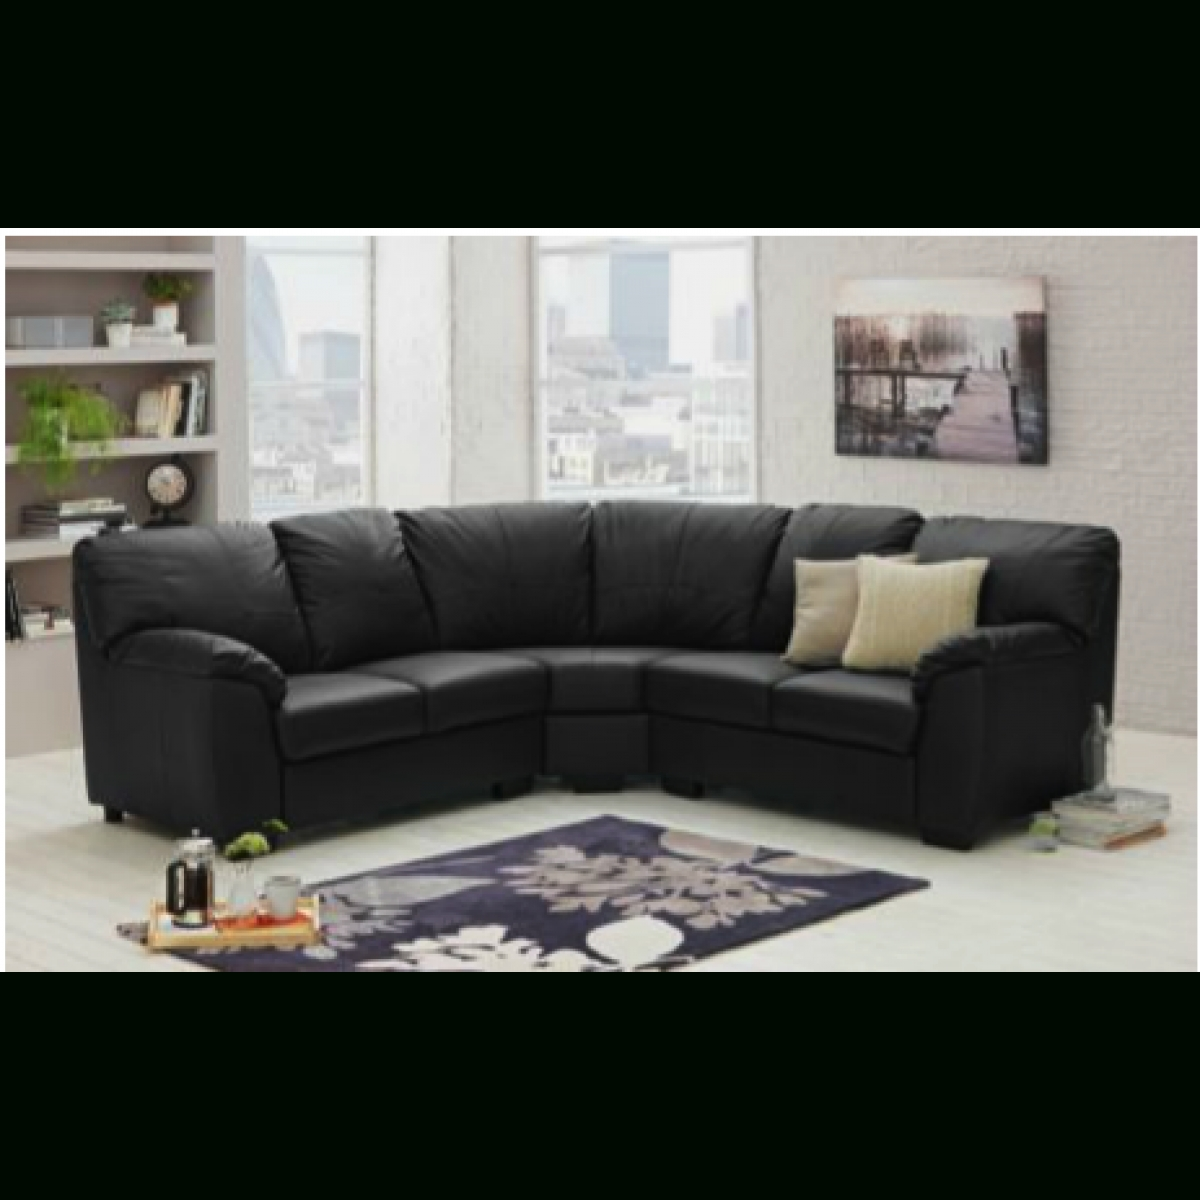 white leather sofa furniture village double recliner uk 20 43 choices of black corner sofas ideas